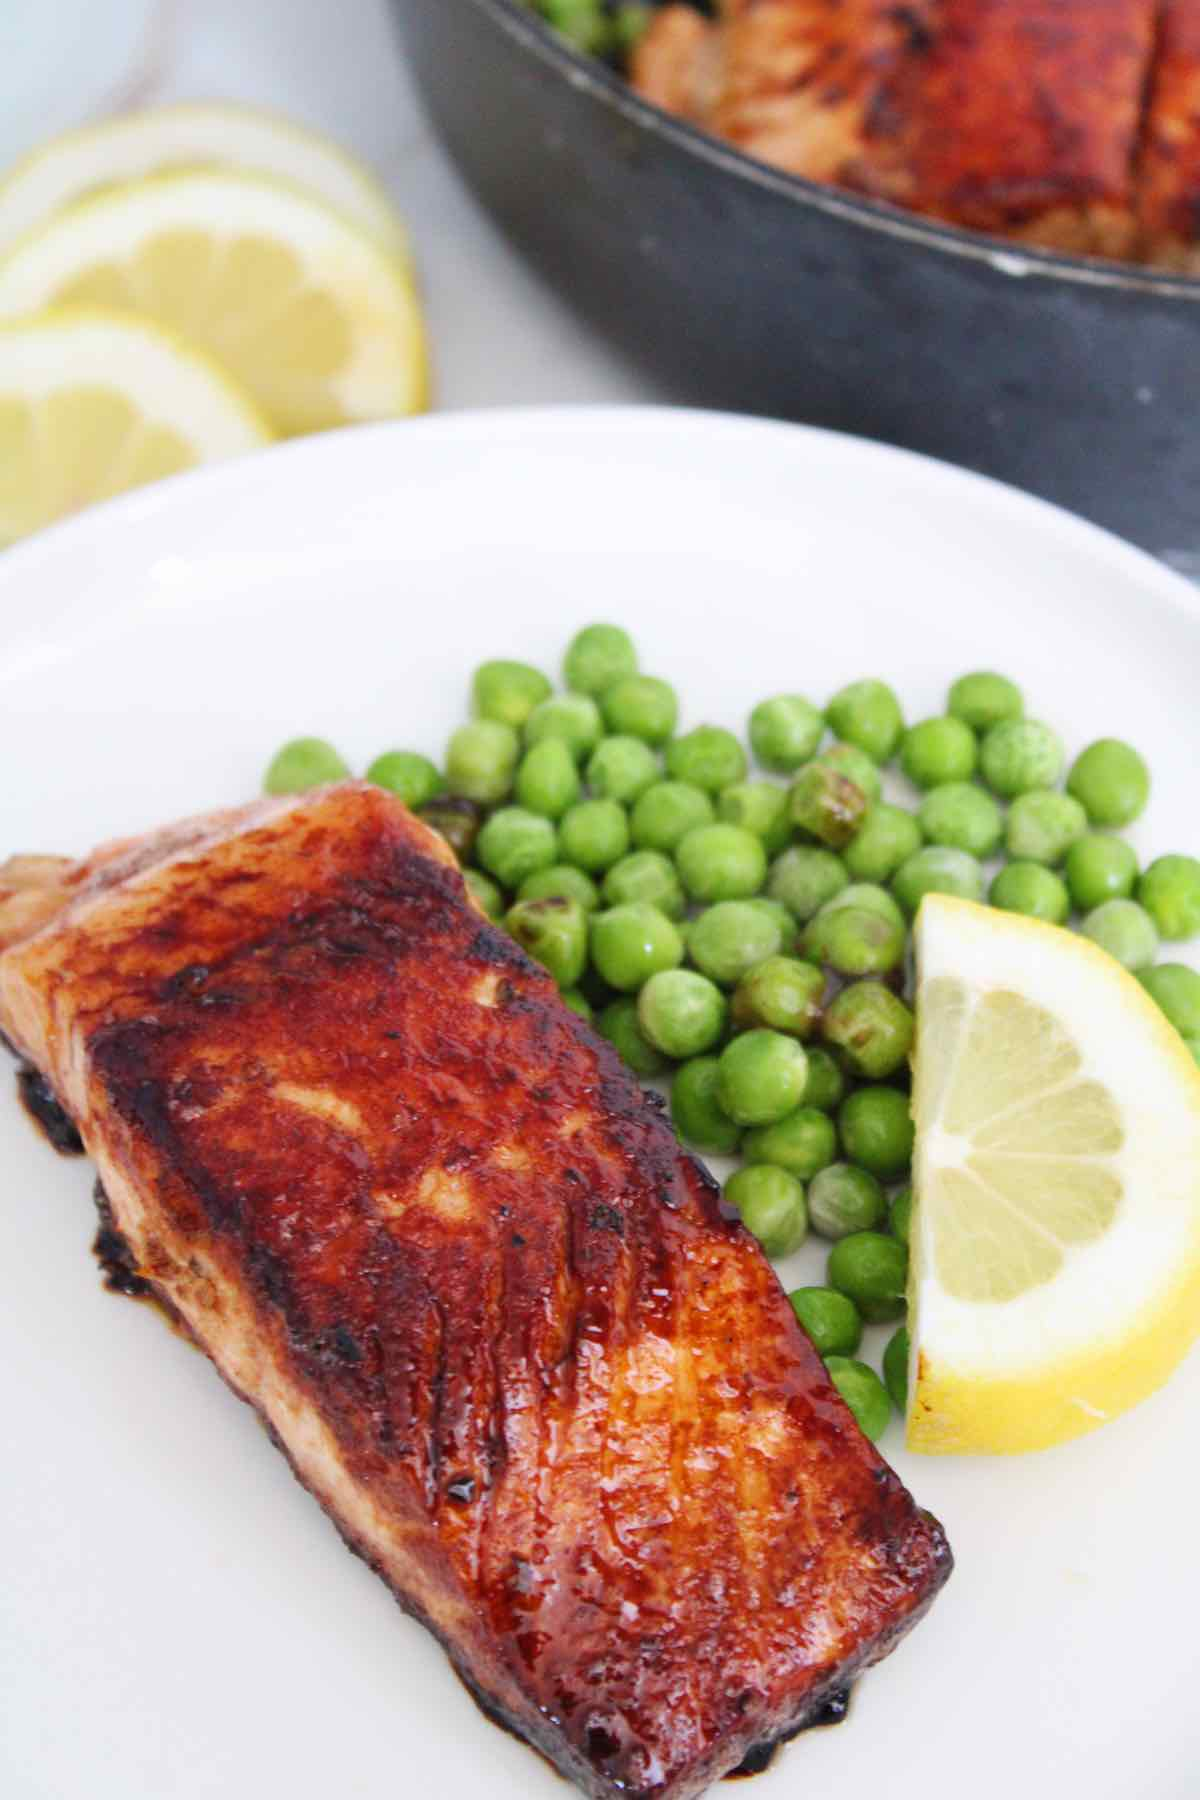 Pan seared salmon fillets served with peas and fresh lemons.